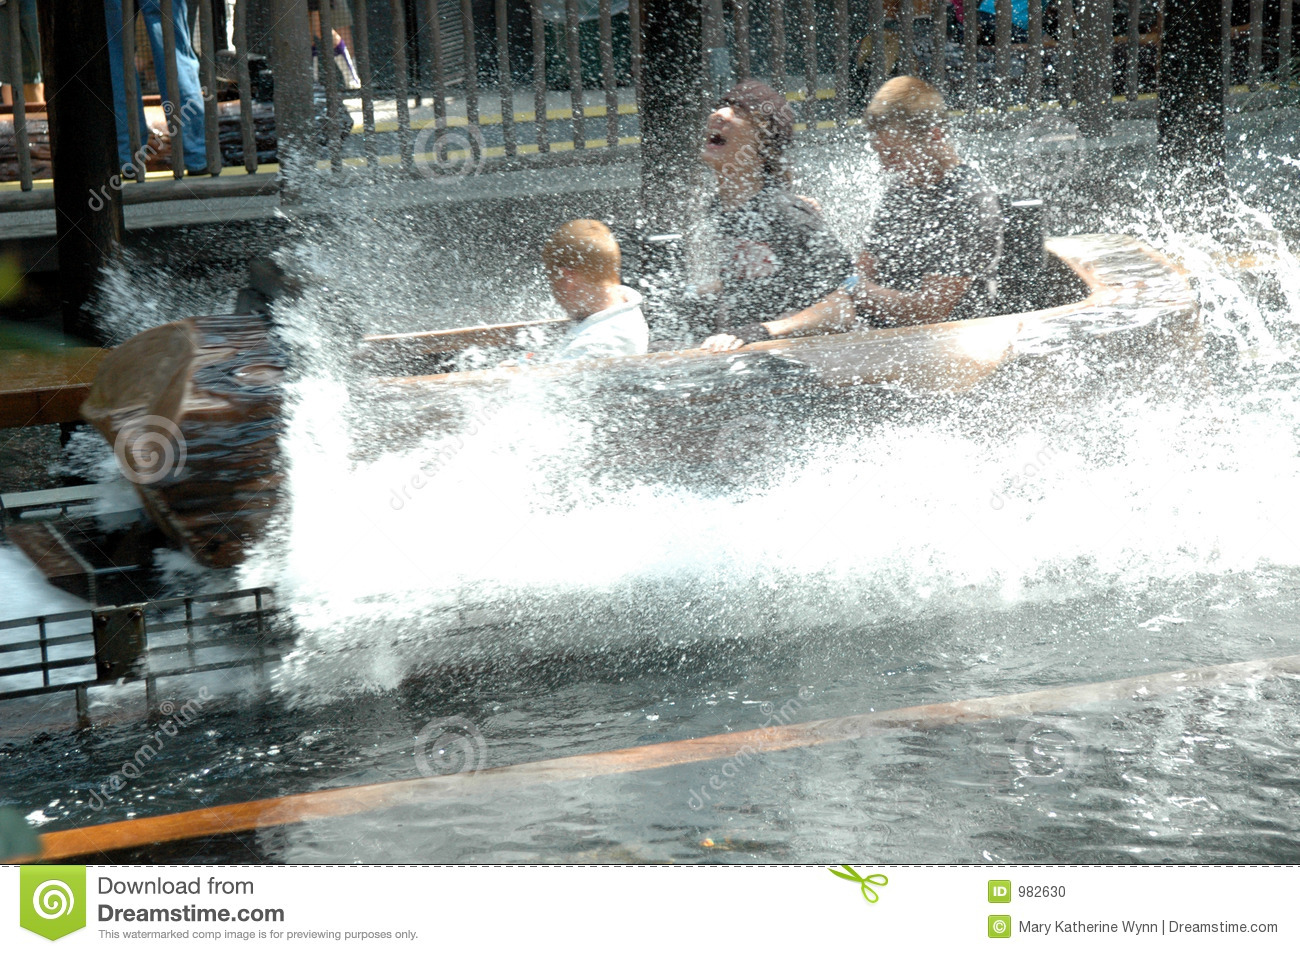 Log Flume ride